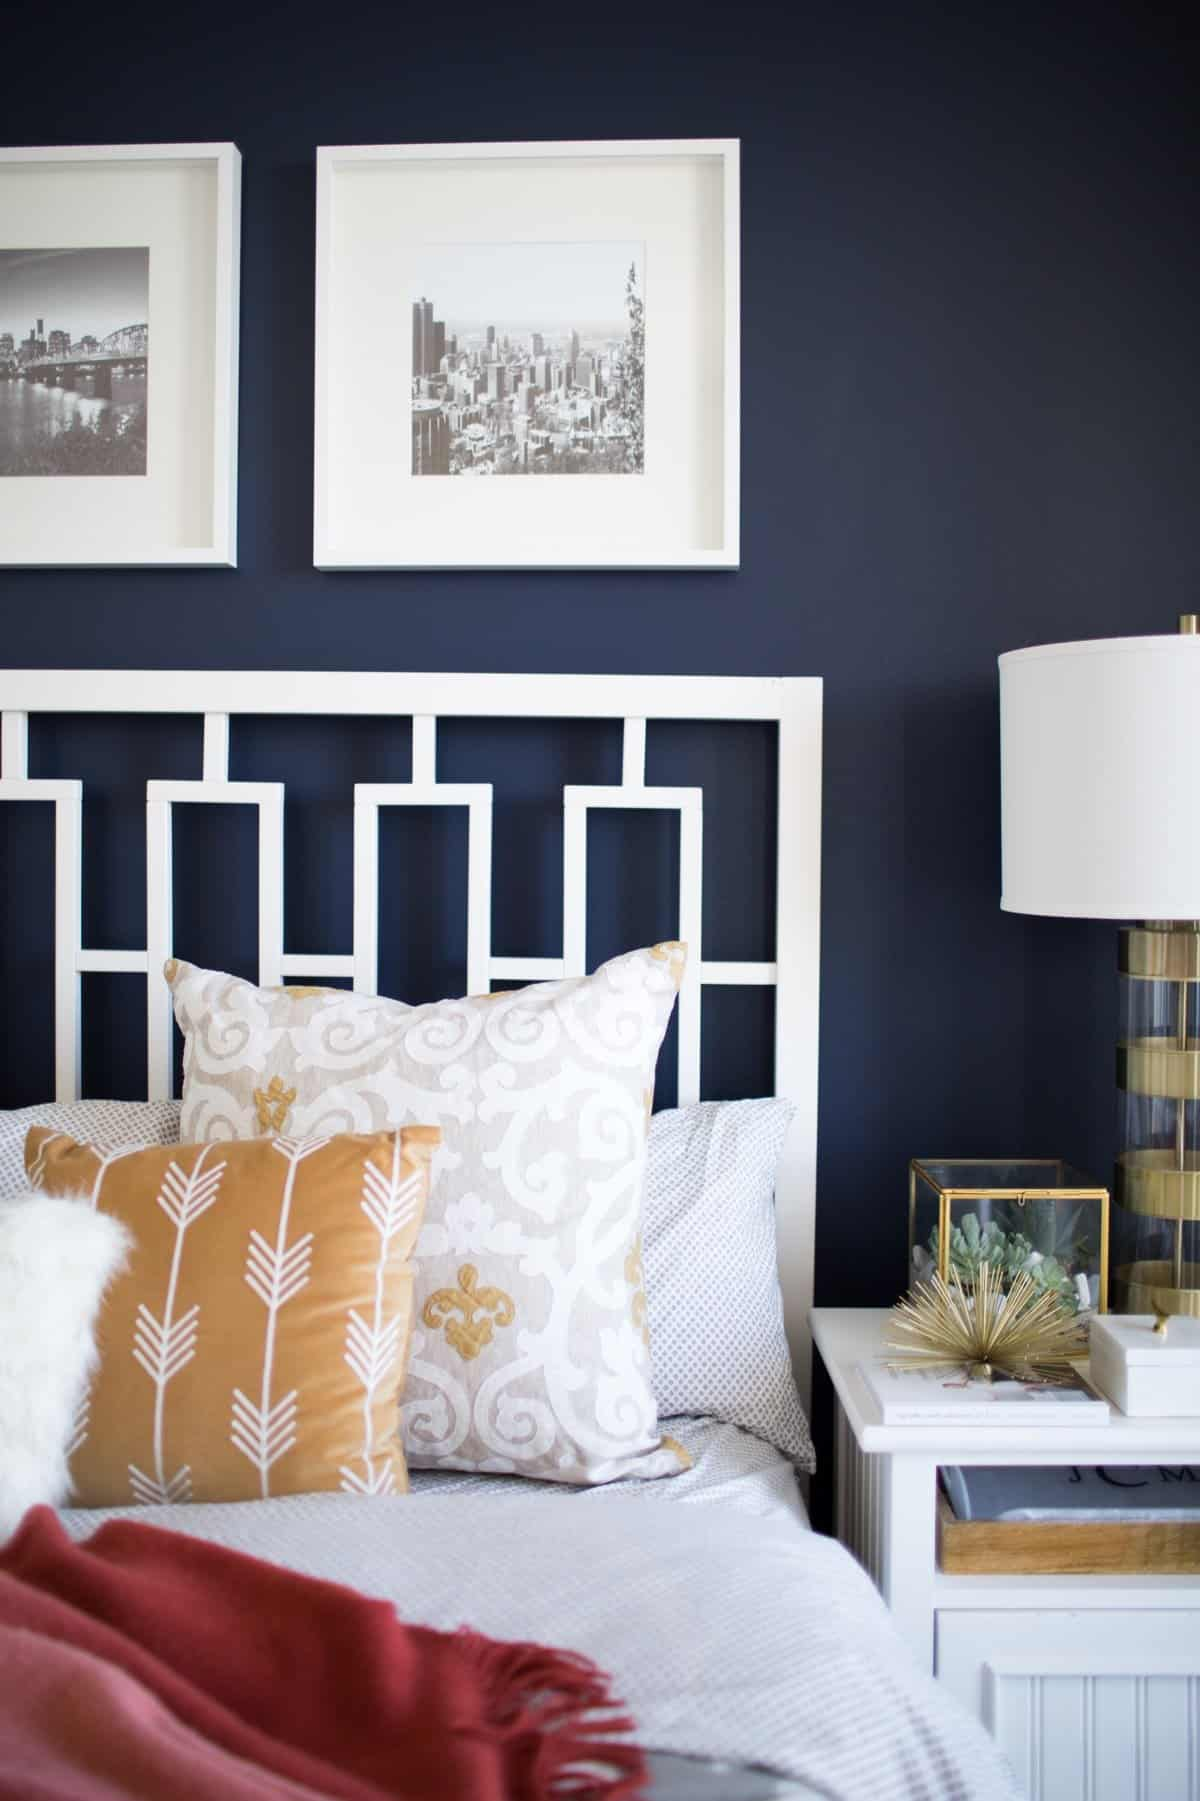 A Look Inside A Blogger's Navy and Mustard Bedroom - My Style Vita Navy Blue Gold Bedroom Decorating Ideas Html on navy blue bathroom ideas, navy blue room ideas, grey and beige bedroom ideas, navy blue gray bedroom, navy blue bedroom decoration, navy blue bedroom vintage, navy blue bedroom color schemes, navy blue and yellow bedroom, navy and gray bedroom, navy blue furniture ideas, navy blue chairs ideas, navy blue bedroom sets, navy blue and green bedroom, navy blue paint ideas, navy blue bedroom rug, white and blue living room ideas, navy blue walls, navy and tan bedroom, navy blue master bedroom, navy and pink master bedroom,